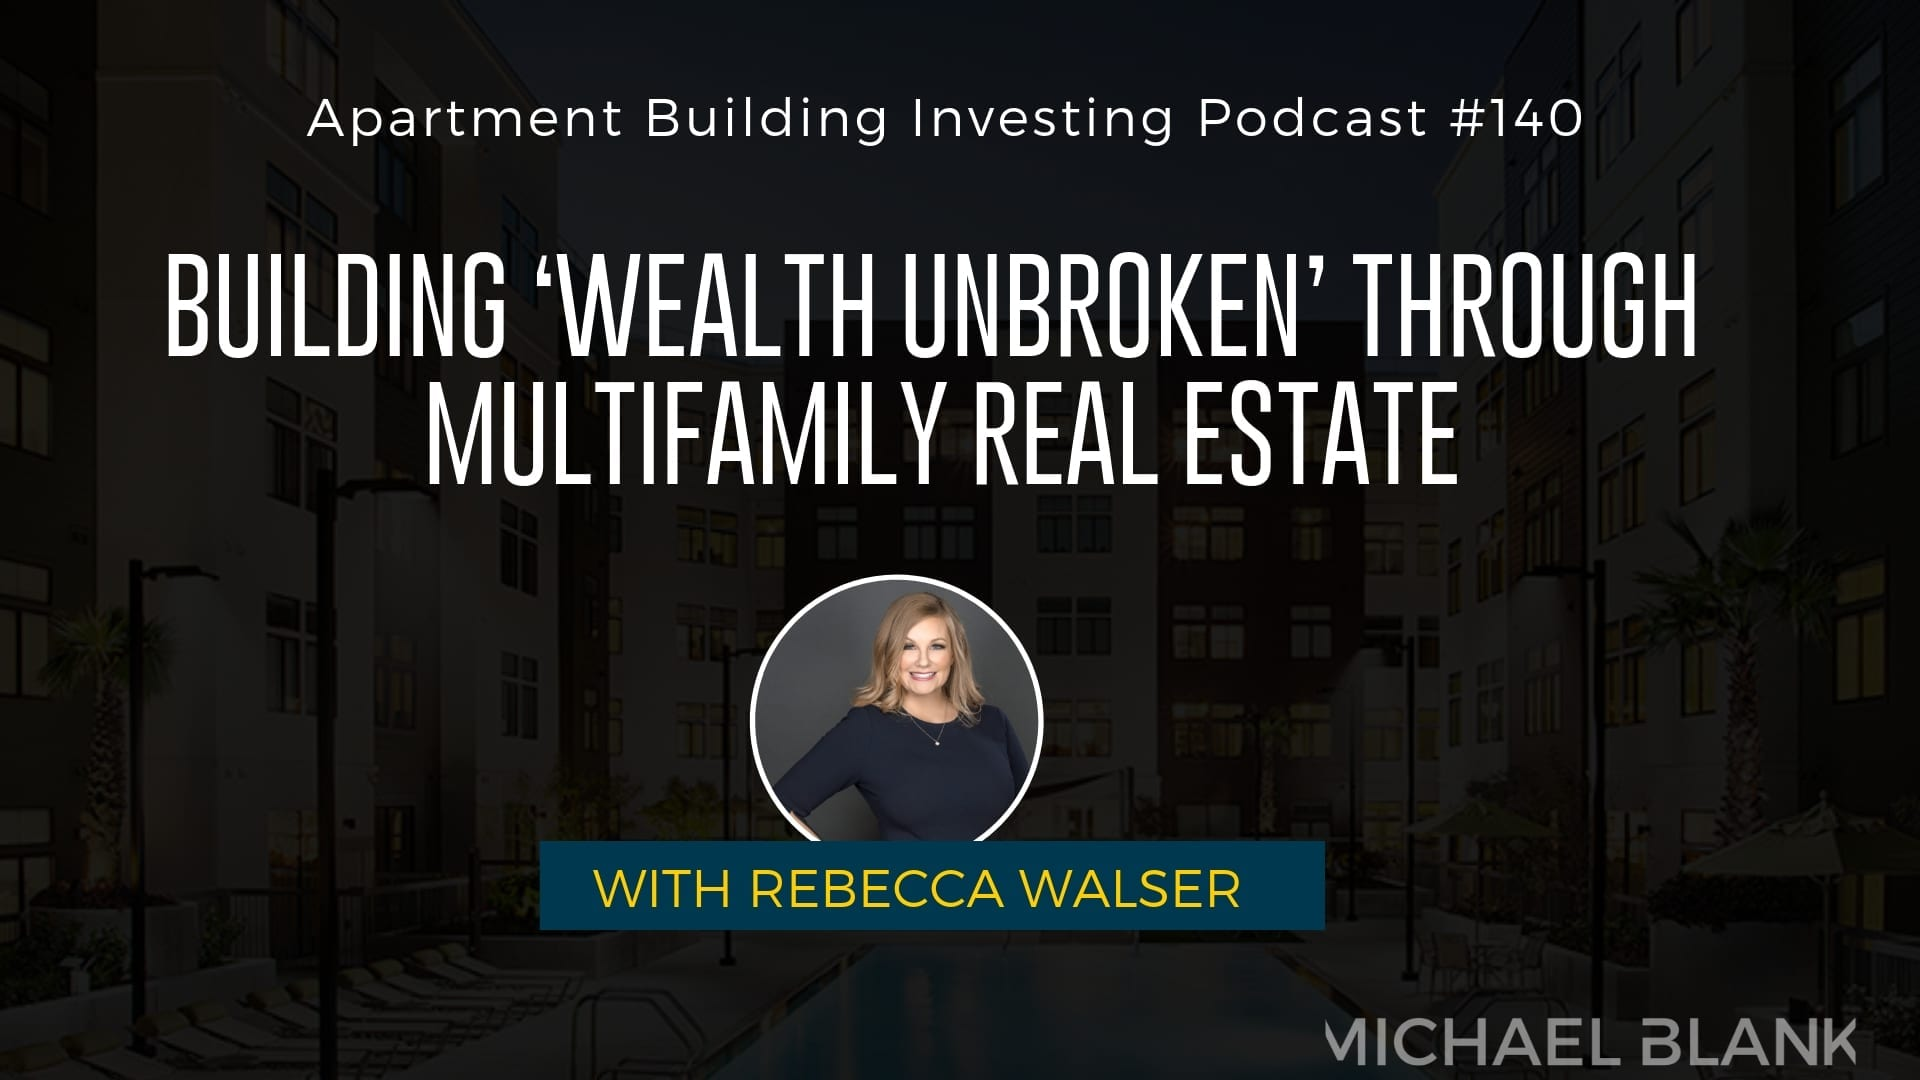 MB 140: Building 'Wealth Unbroken' Through Multifamily Real Estate – With Rebecca Walser